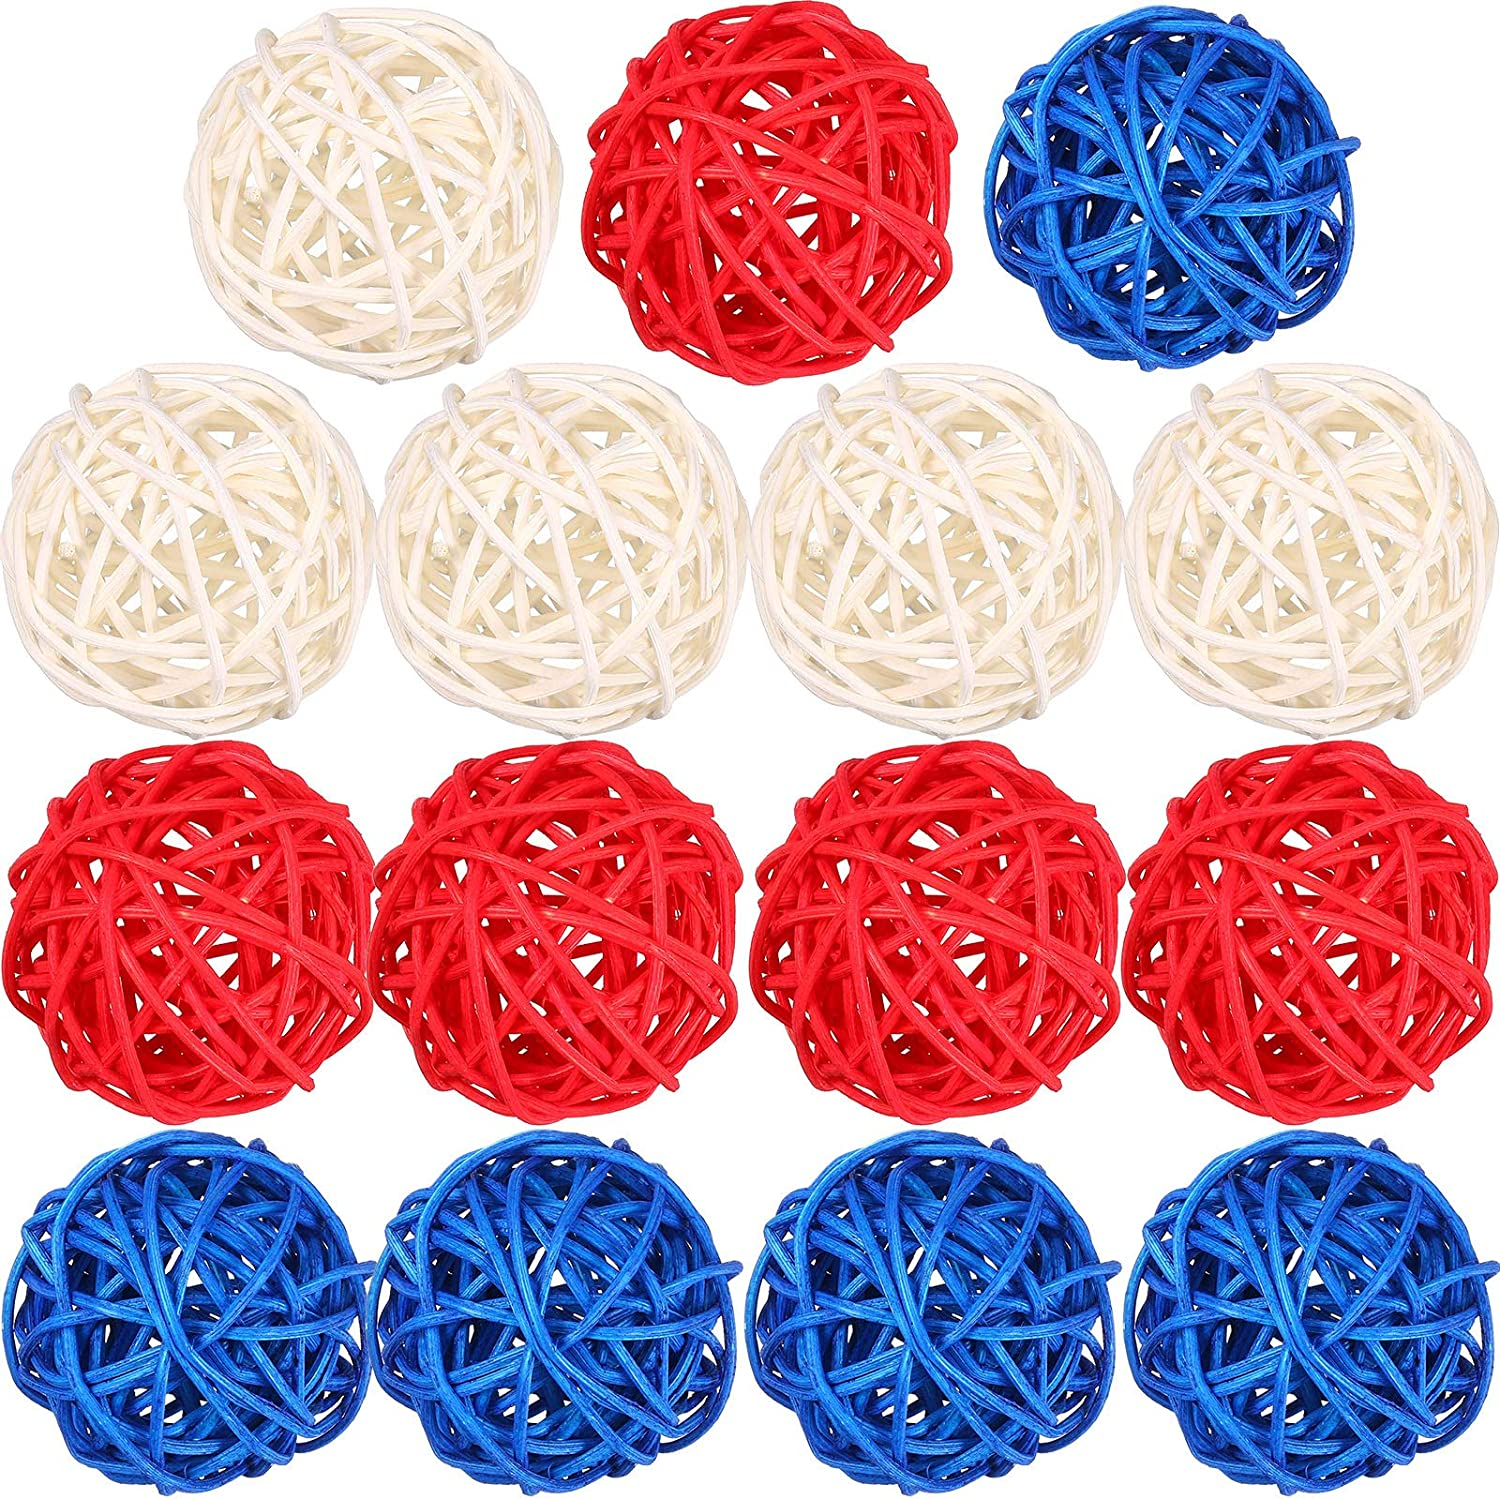 15 Pieces 1.8 inch 4th of July Wicker Rattan Balls Patriotic White Blue Red Decorative Ball Vase Bowl Fillers Natural Sphere Orbs Table Decoration for Independence Memorial Day Home Garden Party Decor